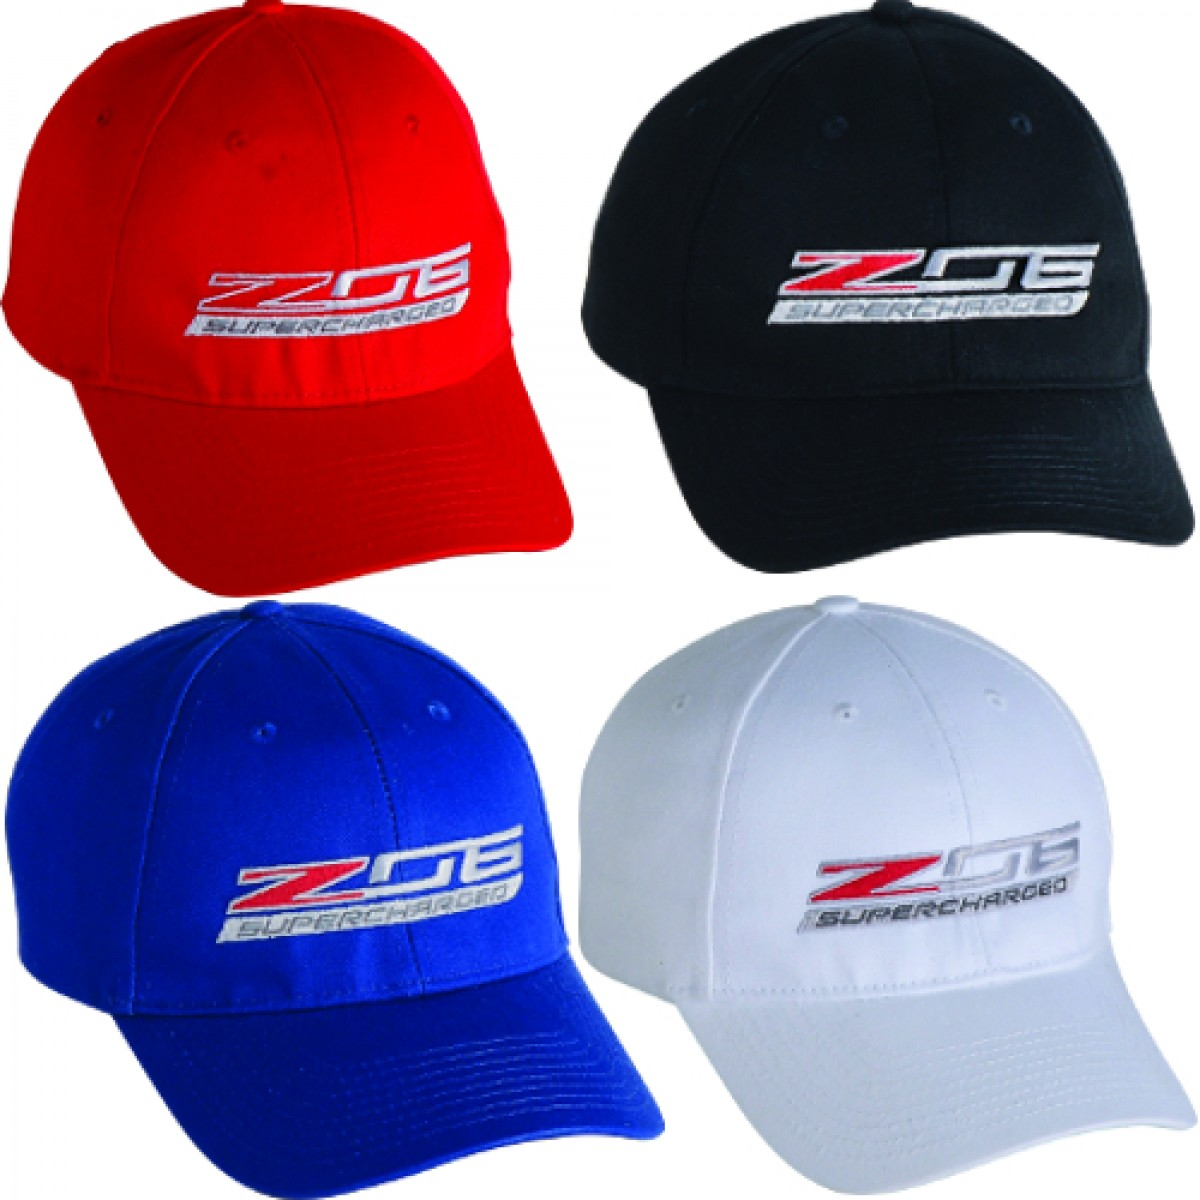 hossrodscom   corvette supercharged hat hot rod accessories garage gear